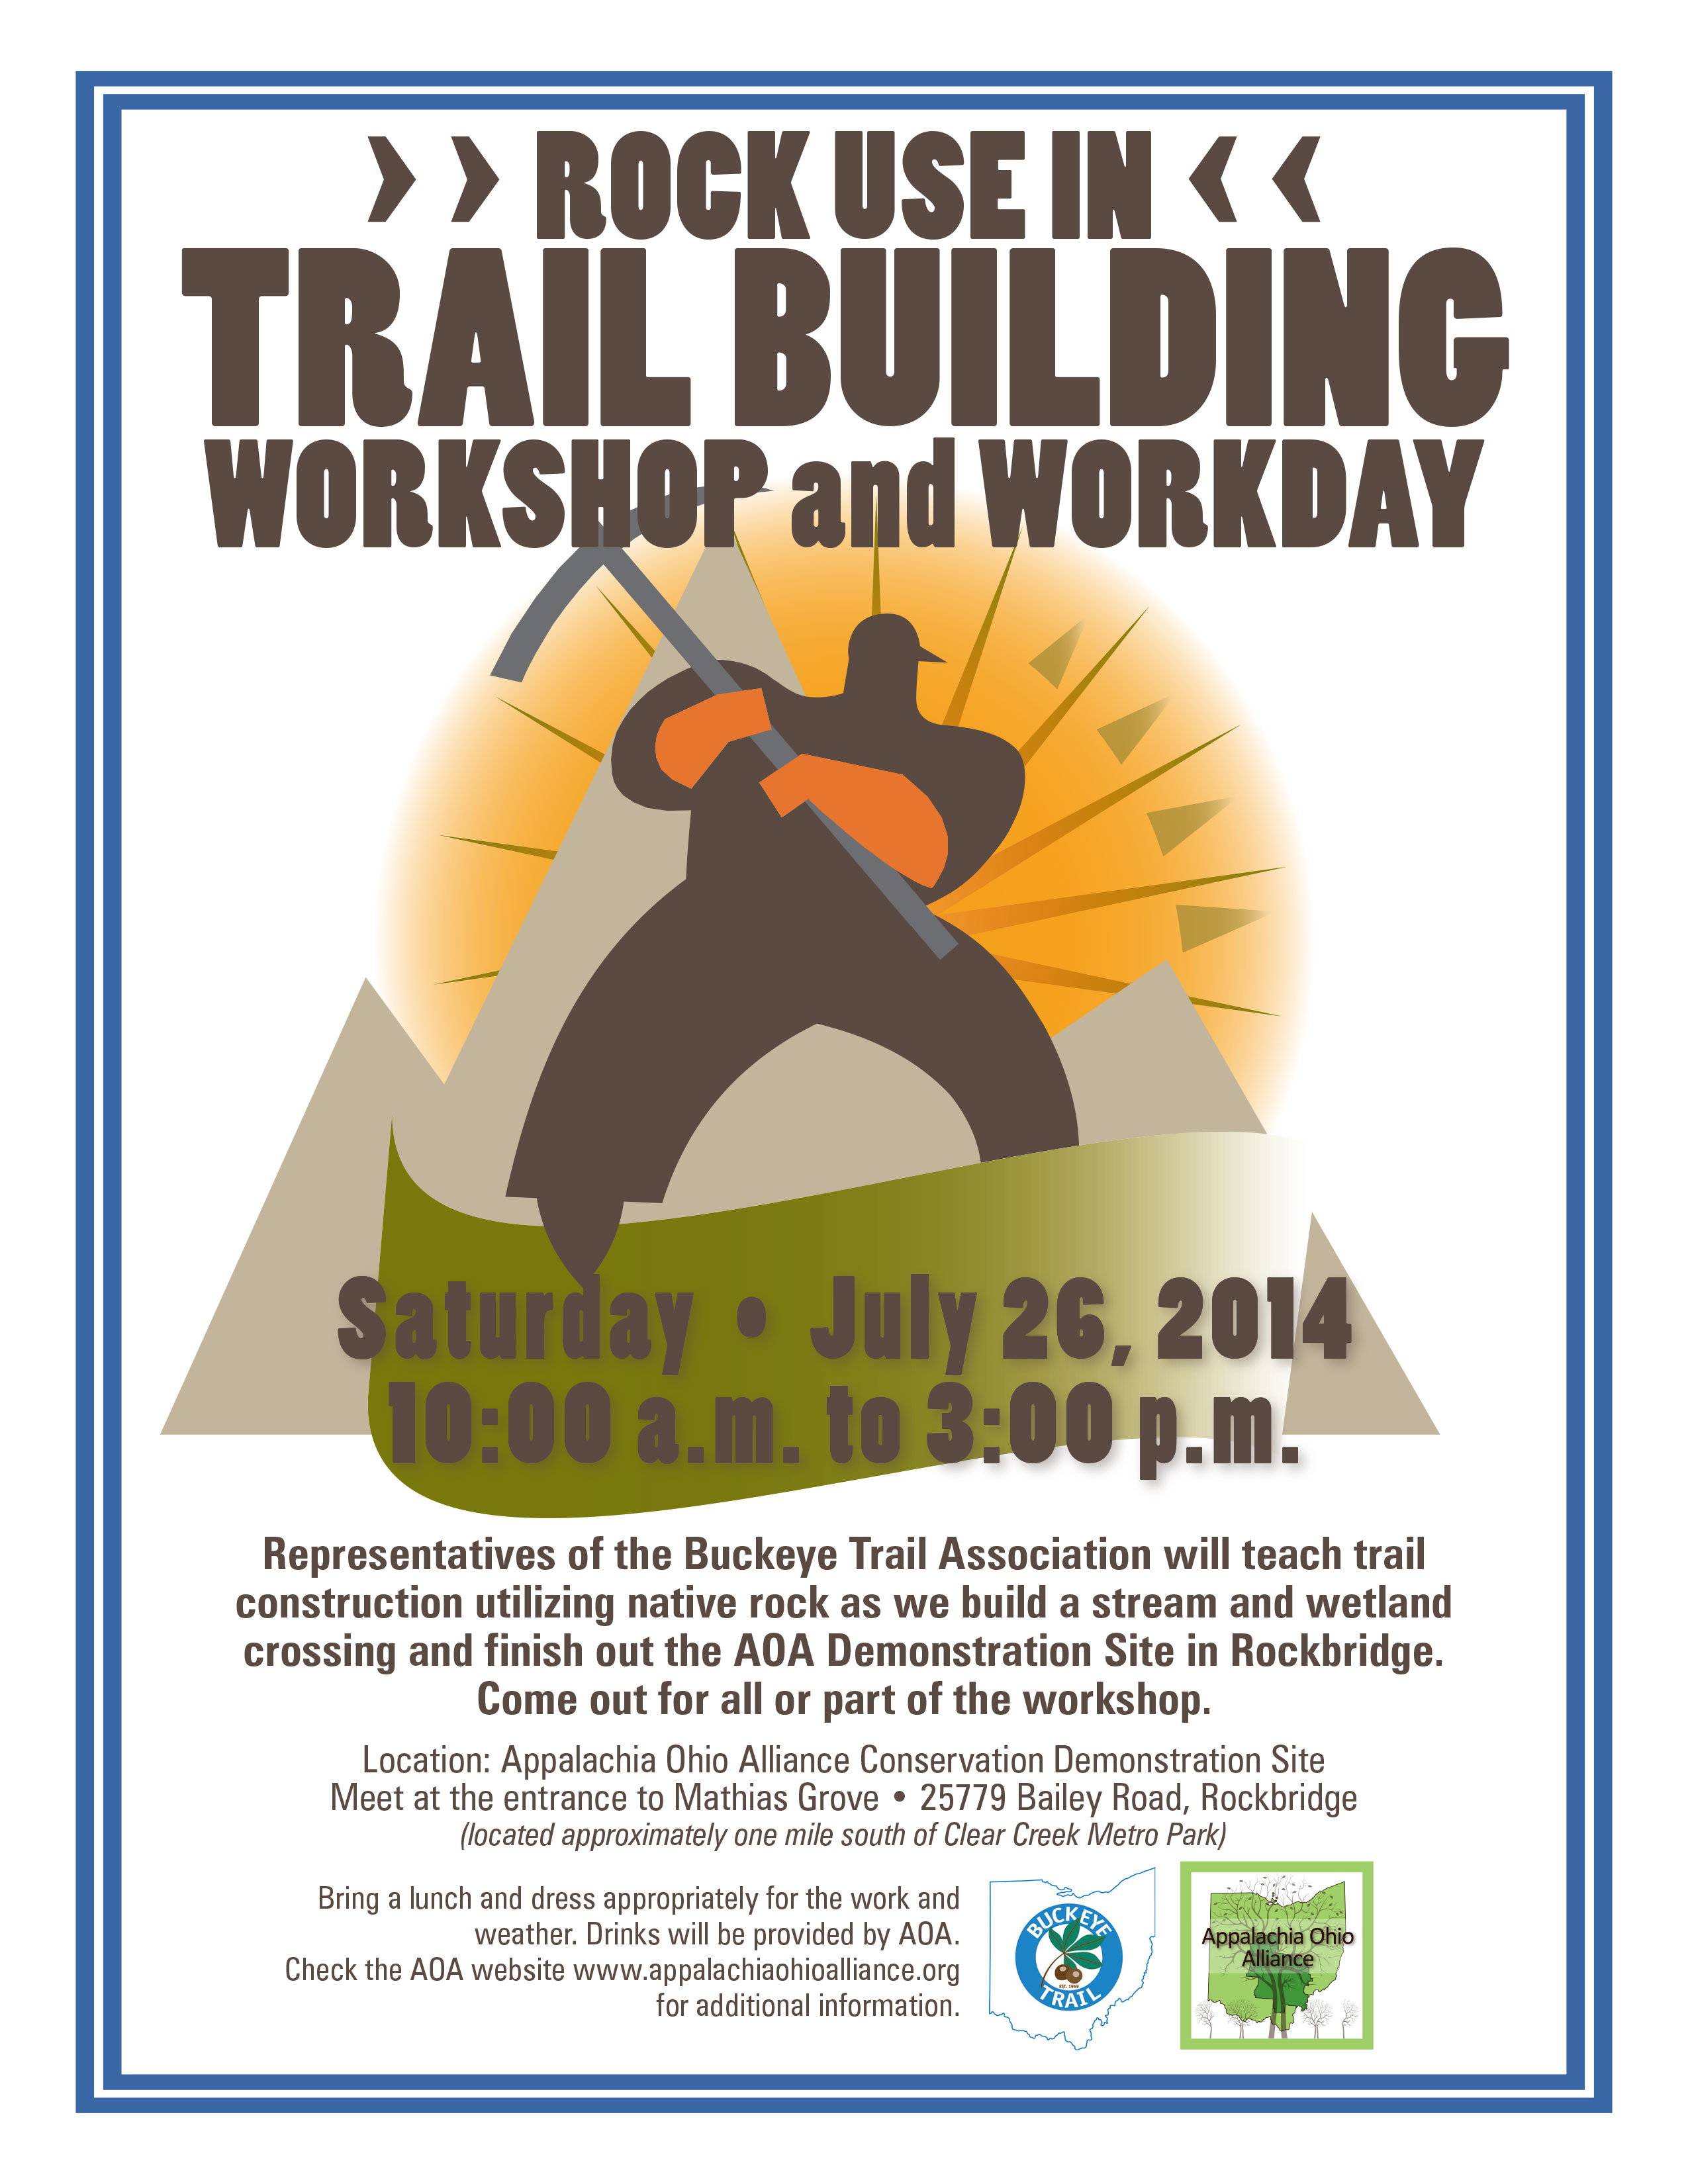 Rock Use in Trail Building Workshop